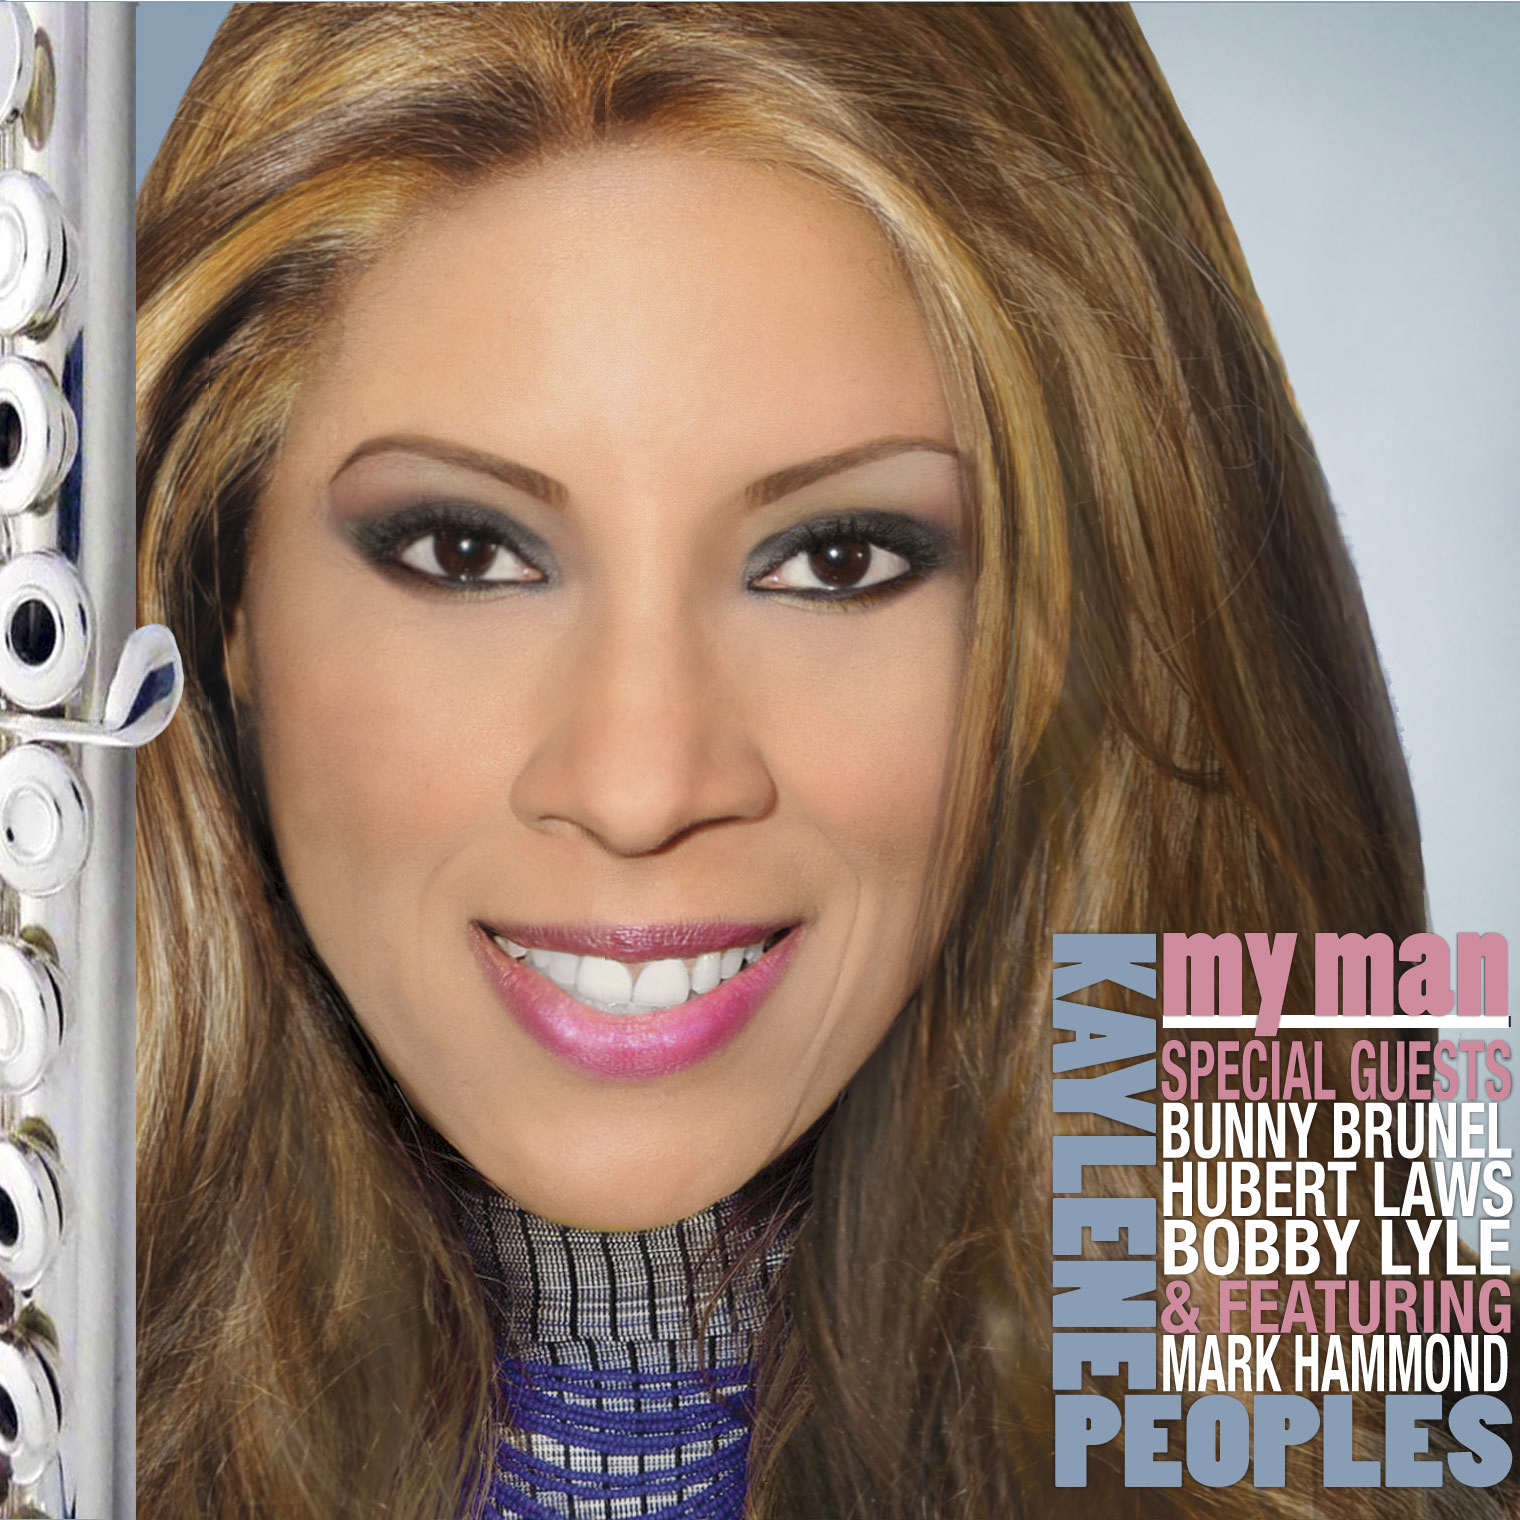 KAYLENE PEOPLES MY MAN CD COVER